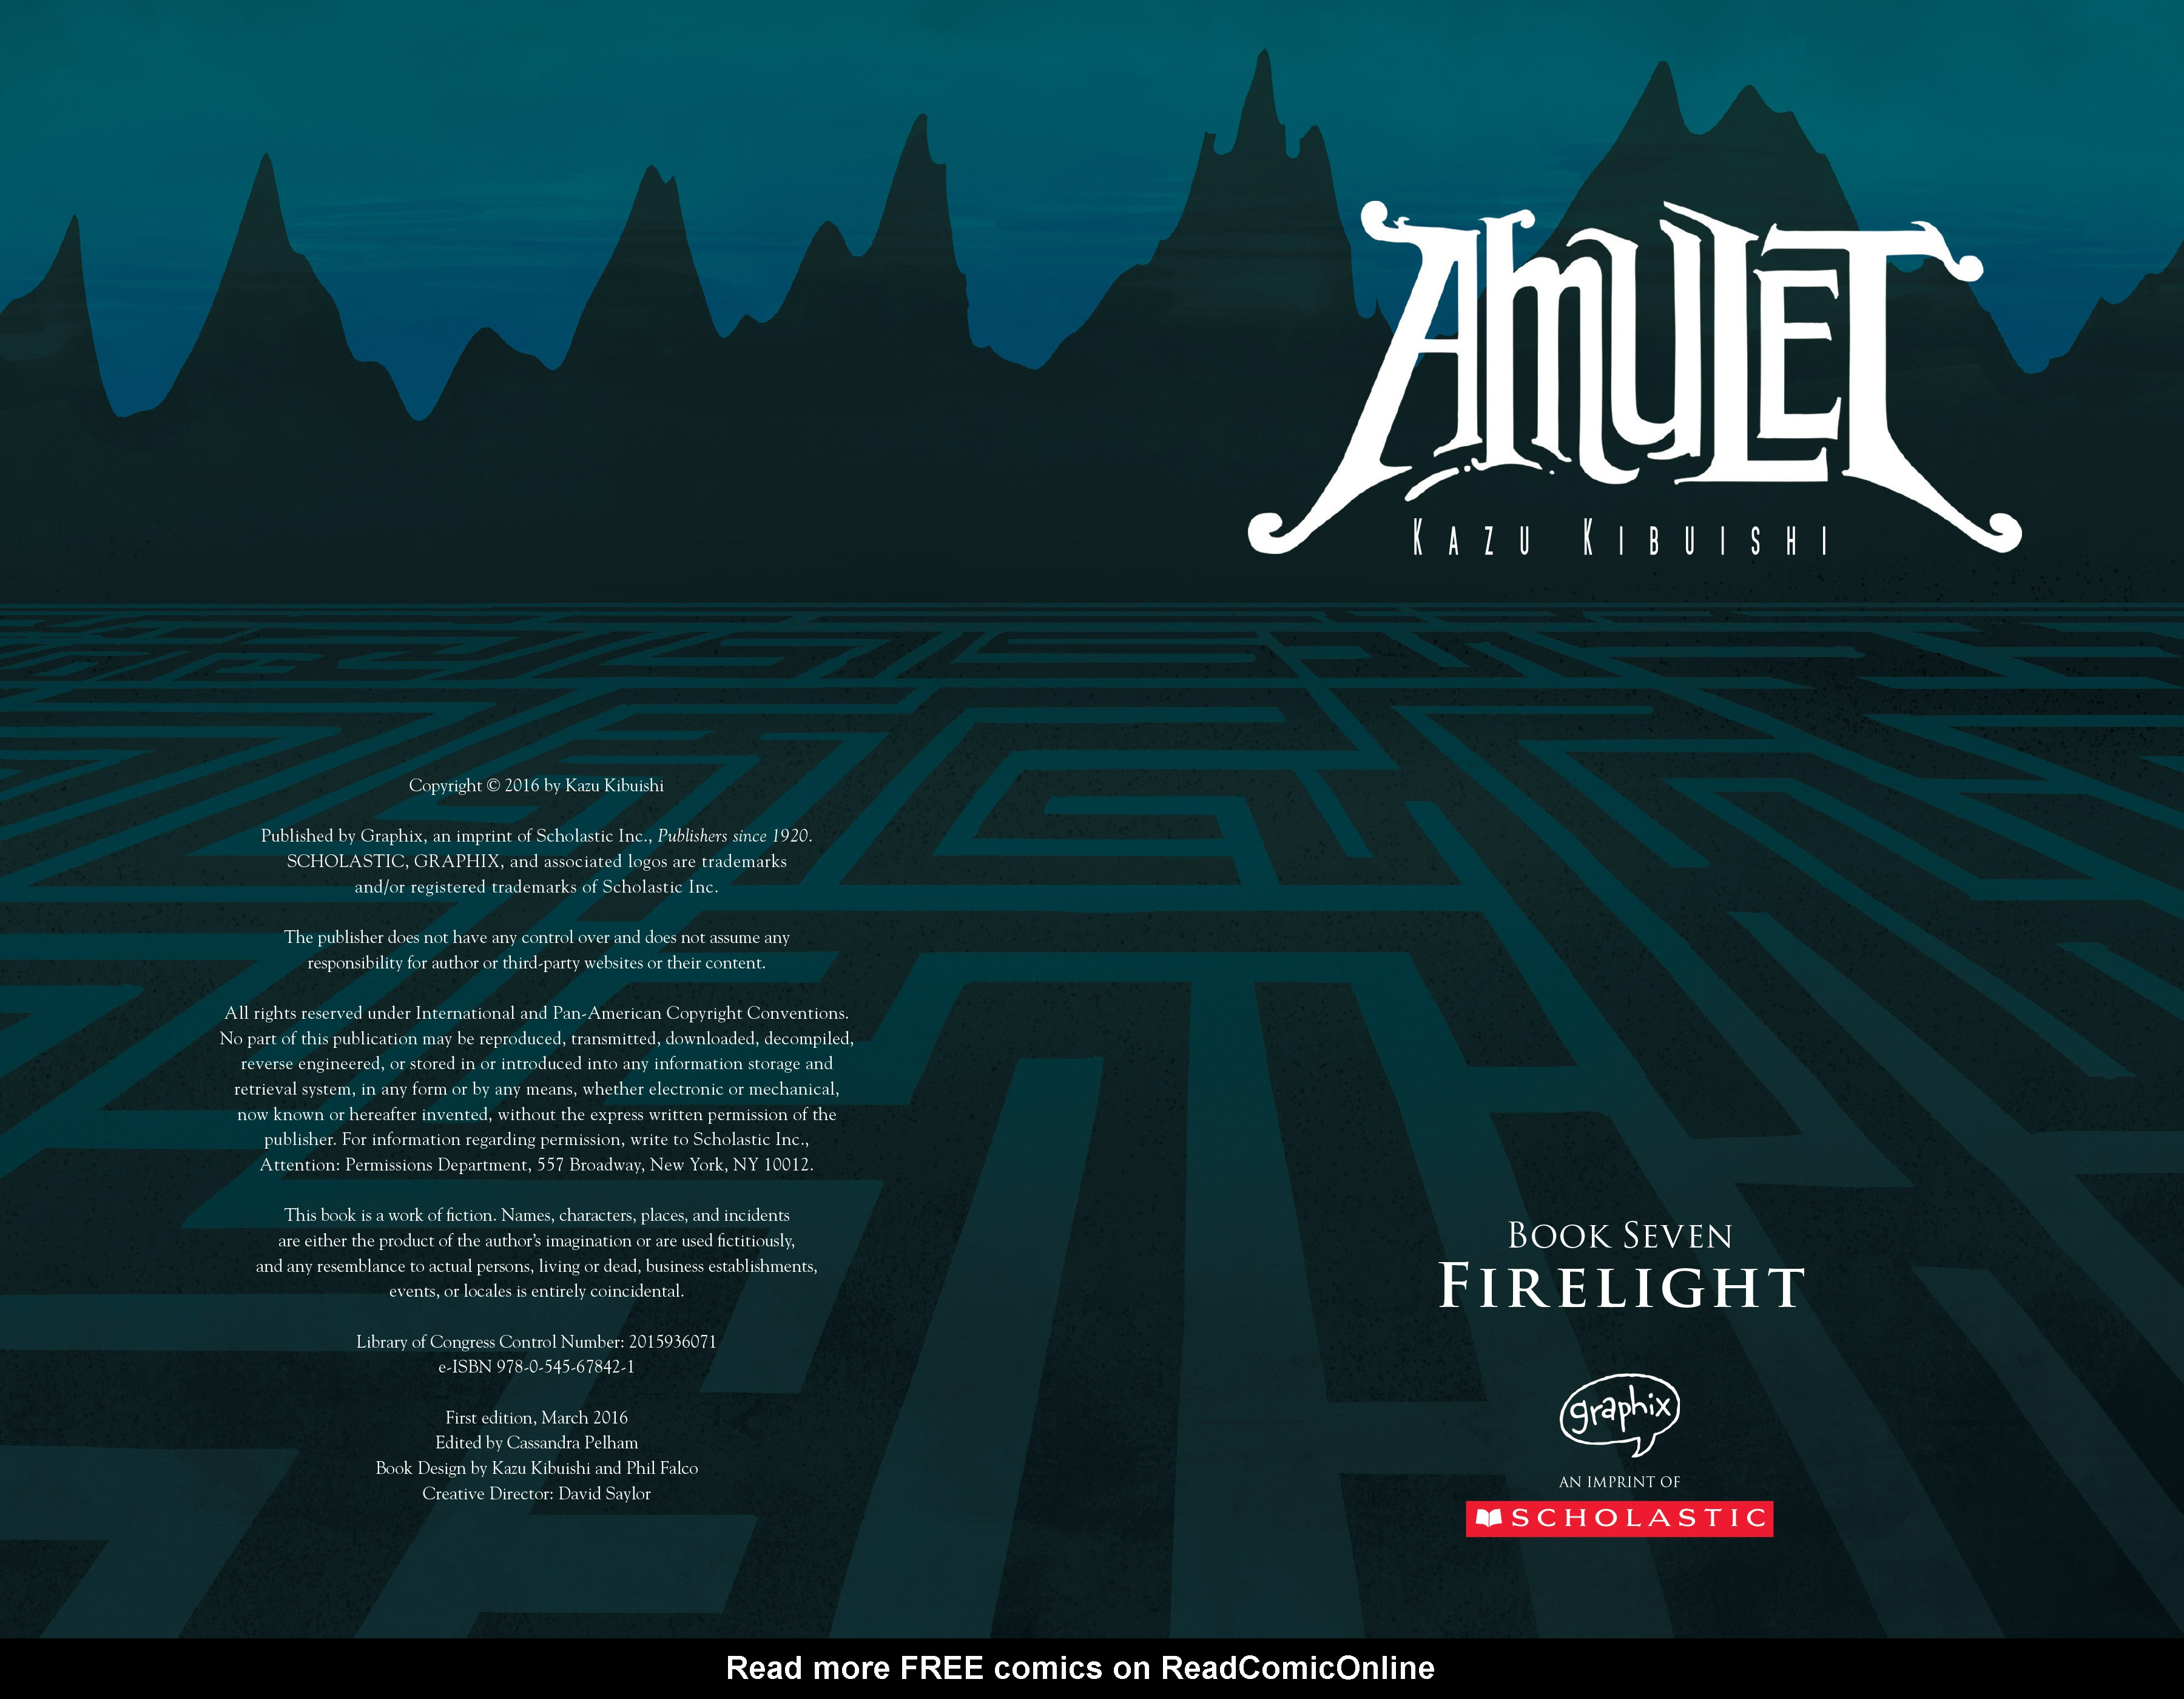 Read online Amulet comic -  Issue #7 - 4